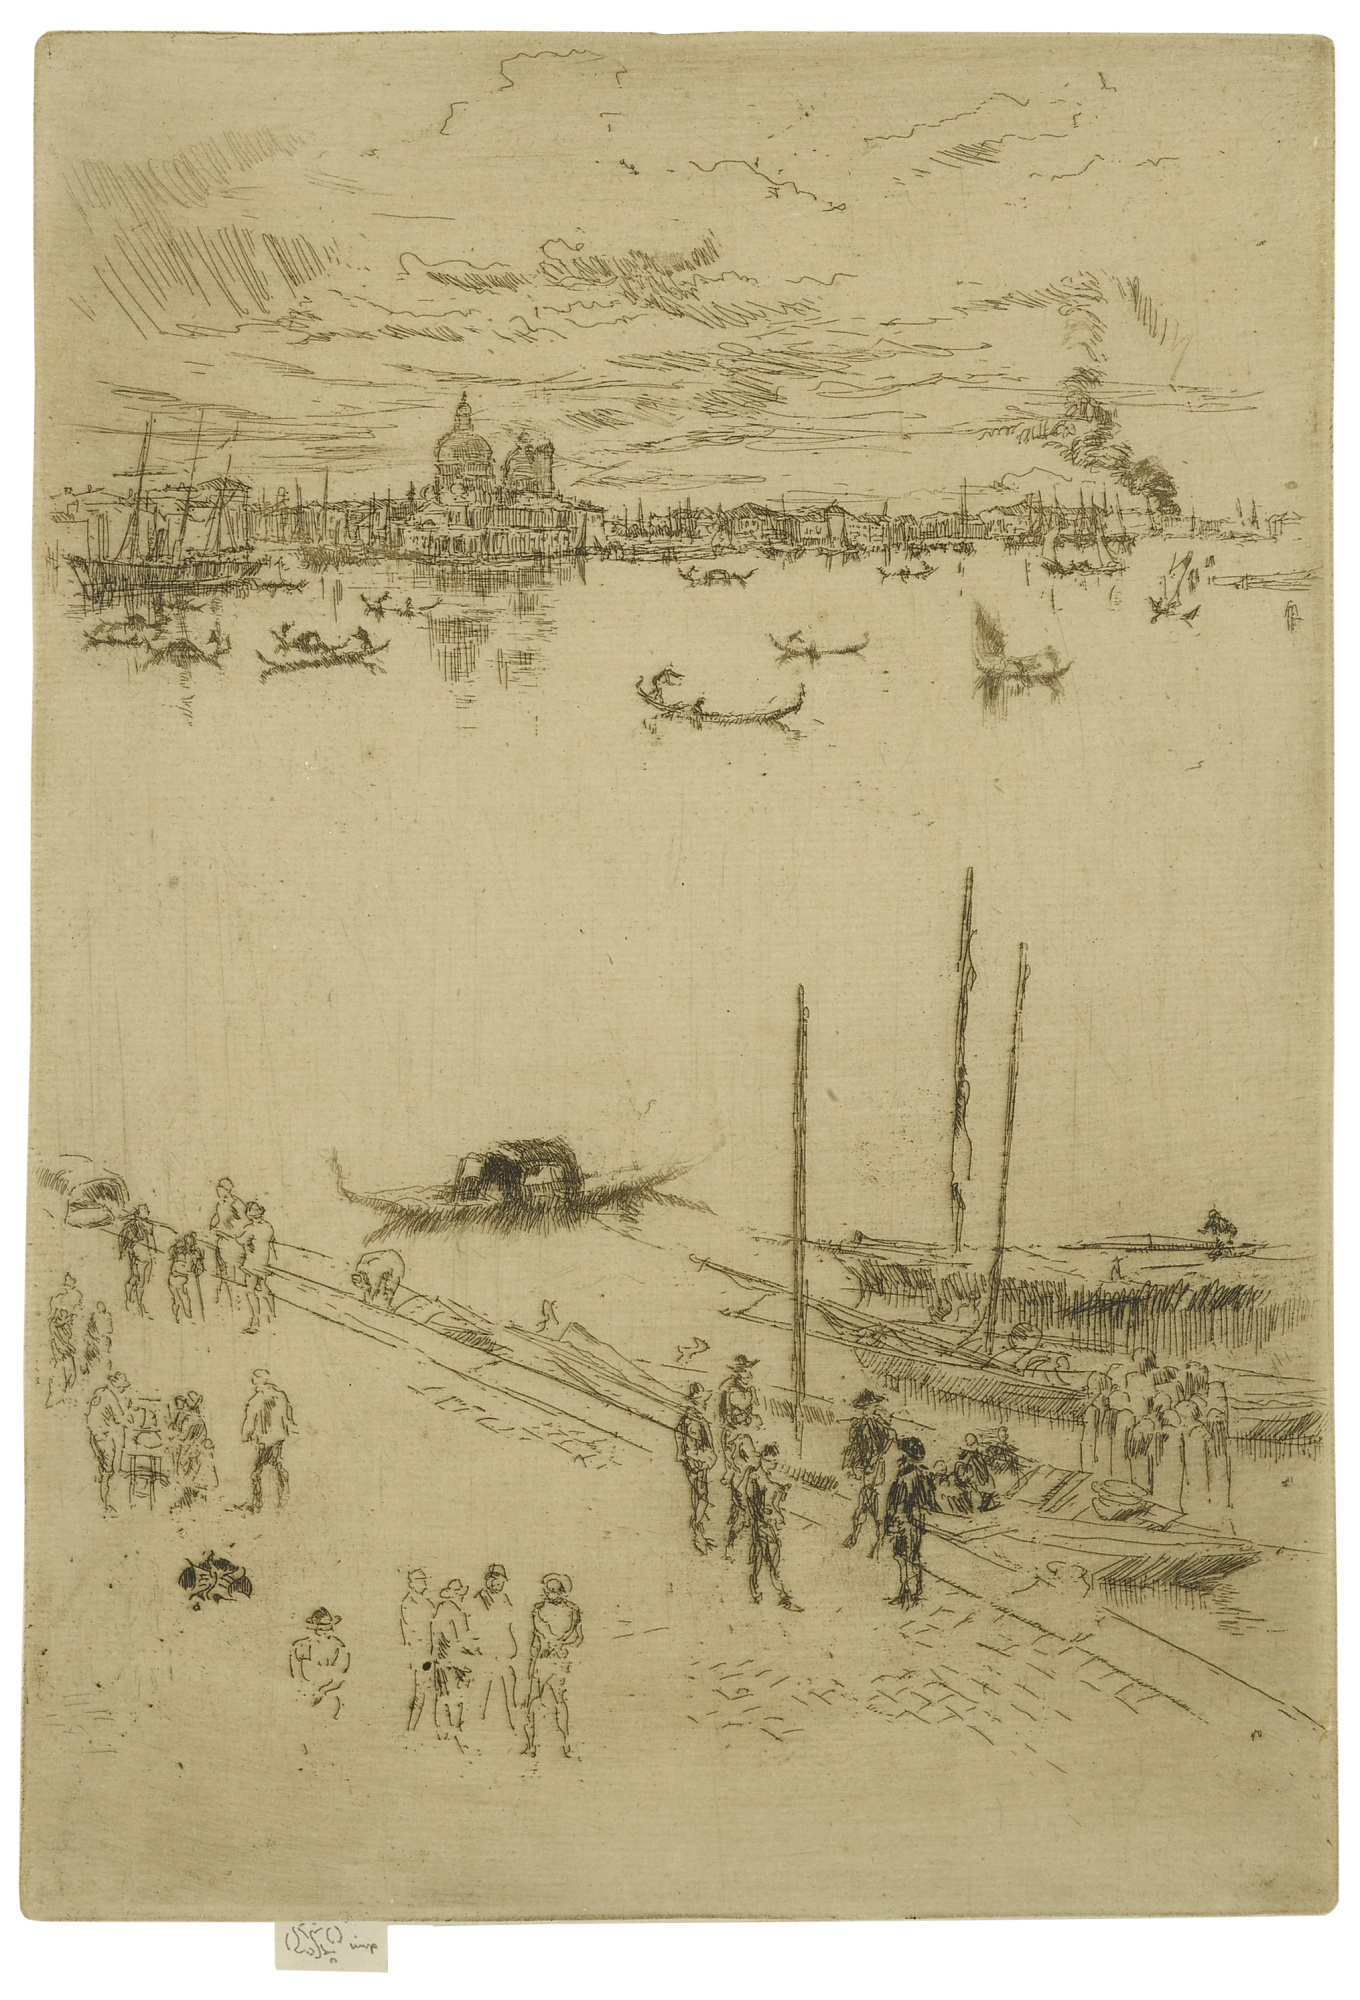 James Mcneill Whistler - Upright Venice (K. 205; G. 232)-1880